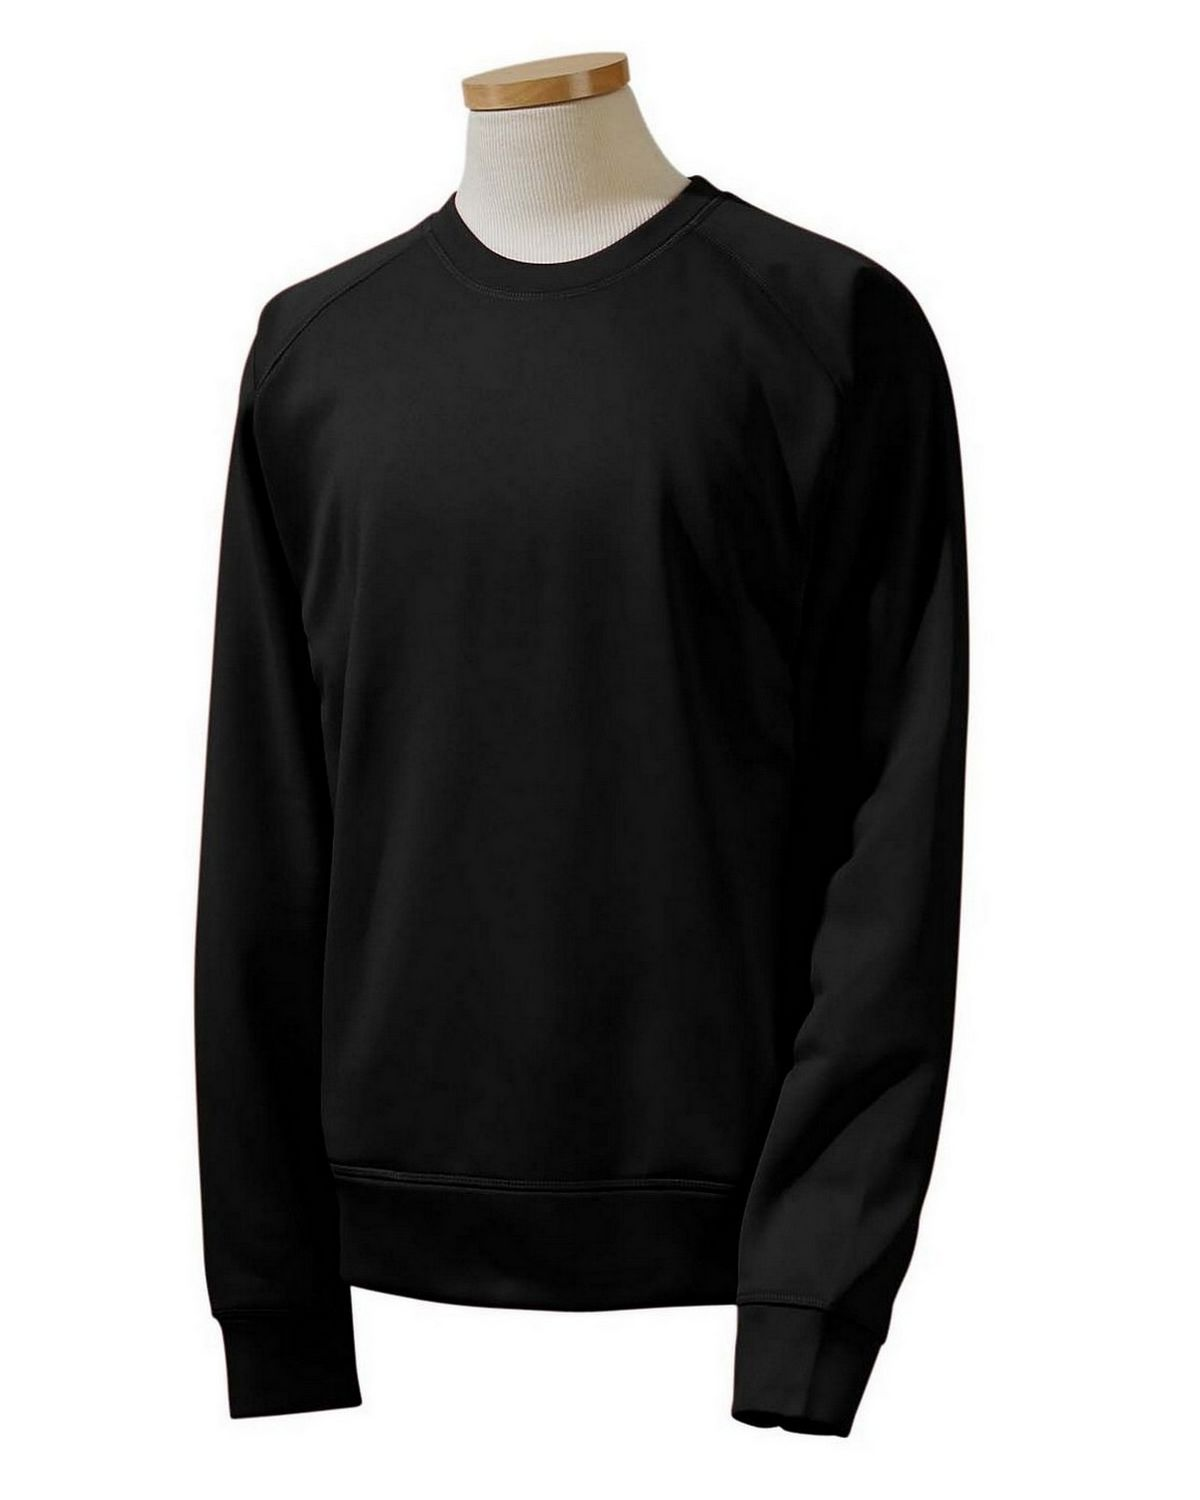 Russell Athletic 852EFM Tech Fleece Crew - Black - S 852EFM